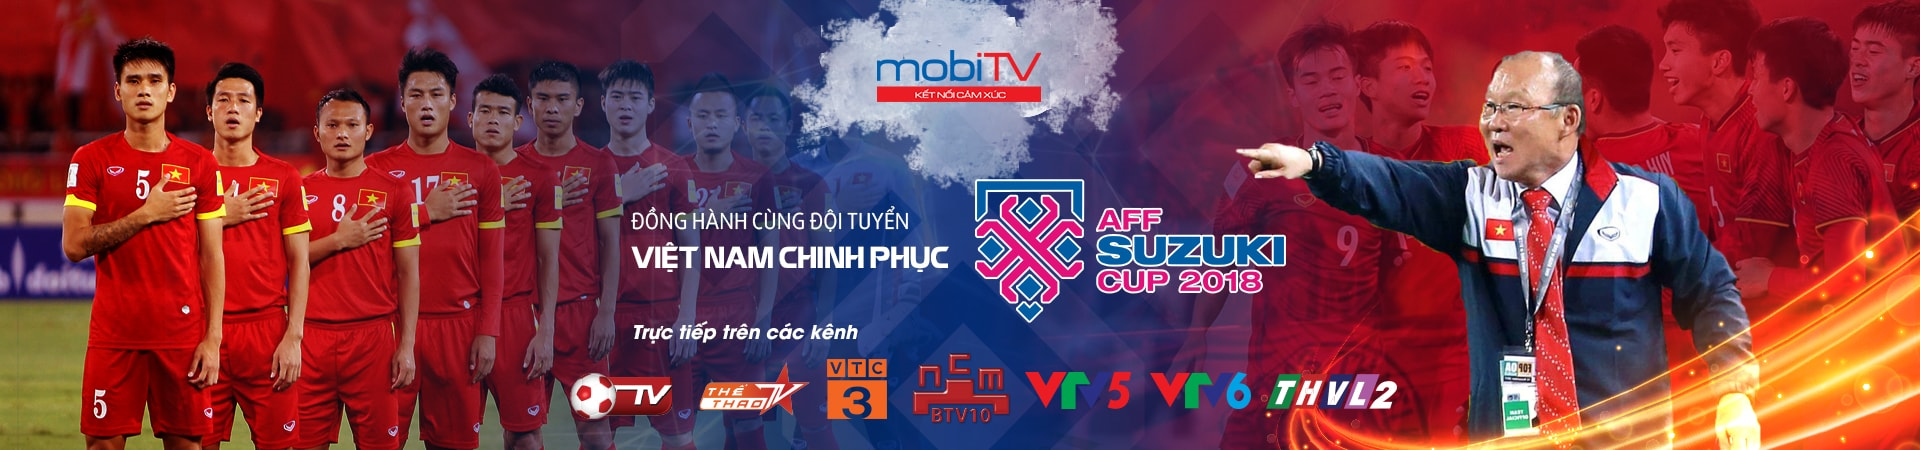 truyen-hinh-mobitv-aff-cup